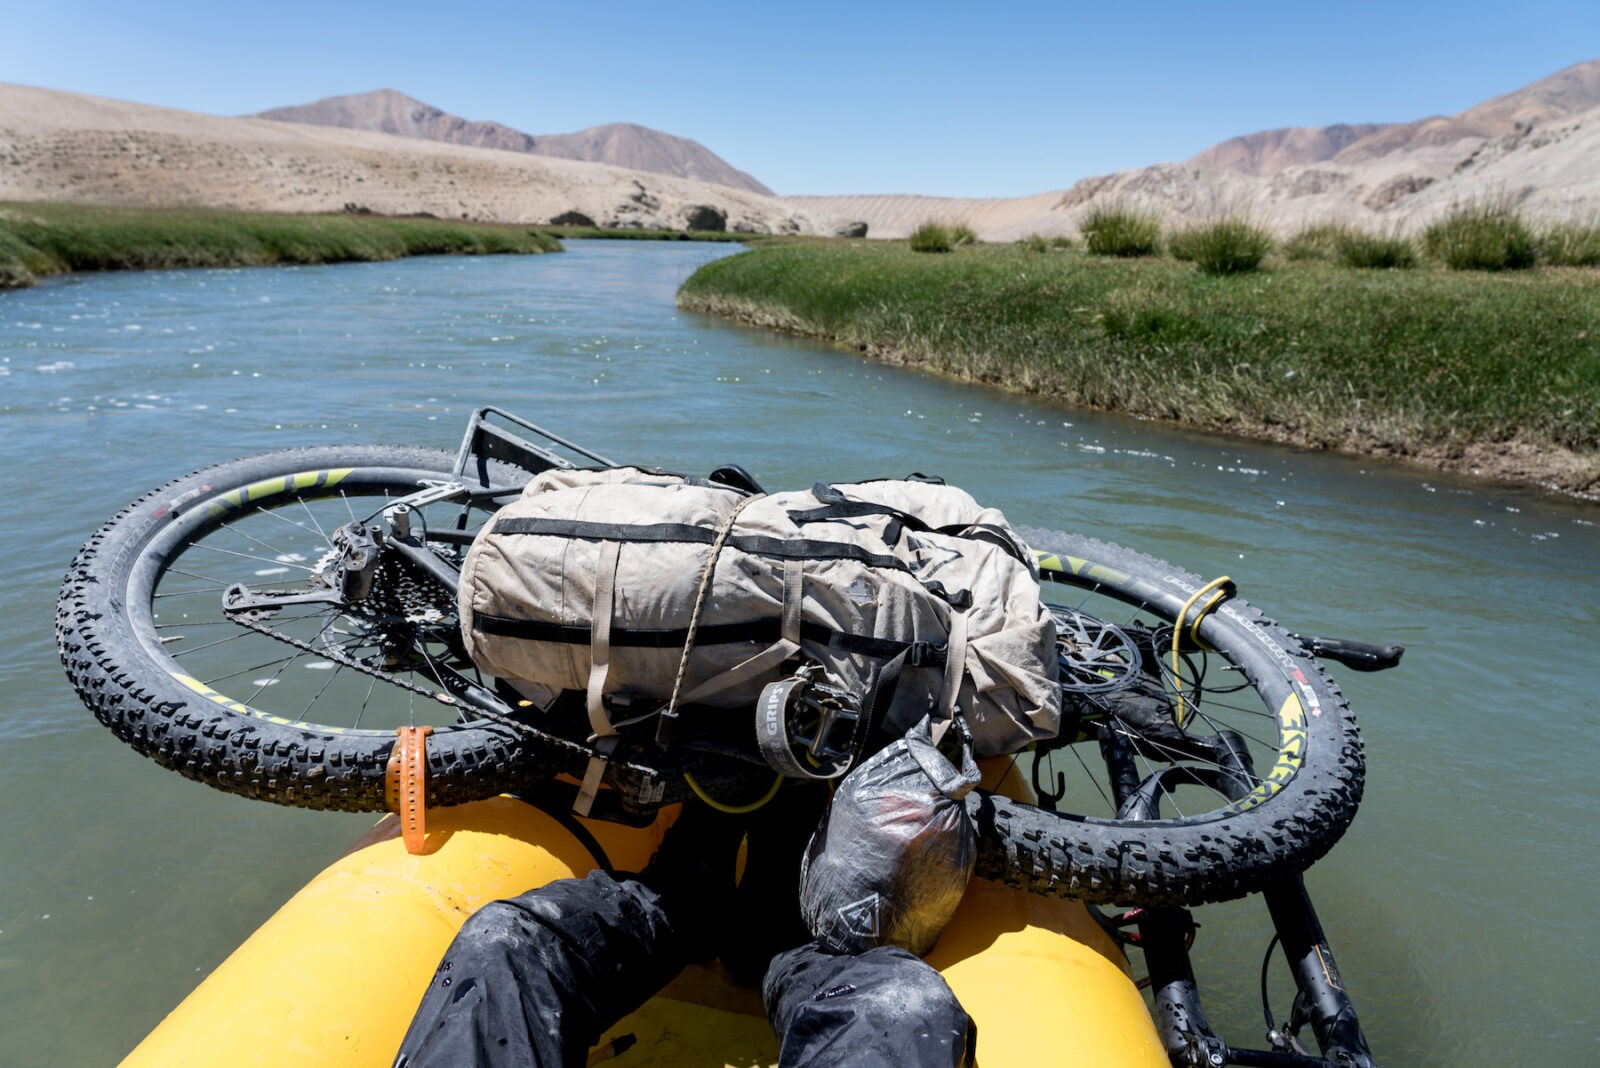 What's in your bikerafting kit?